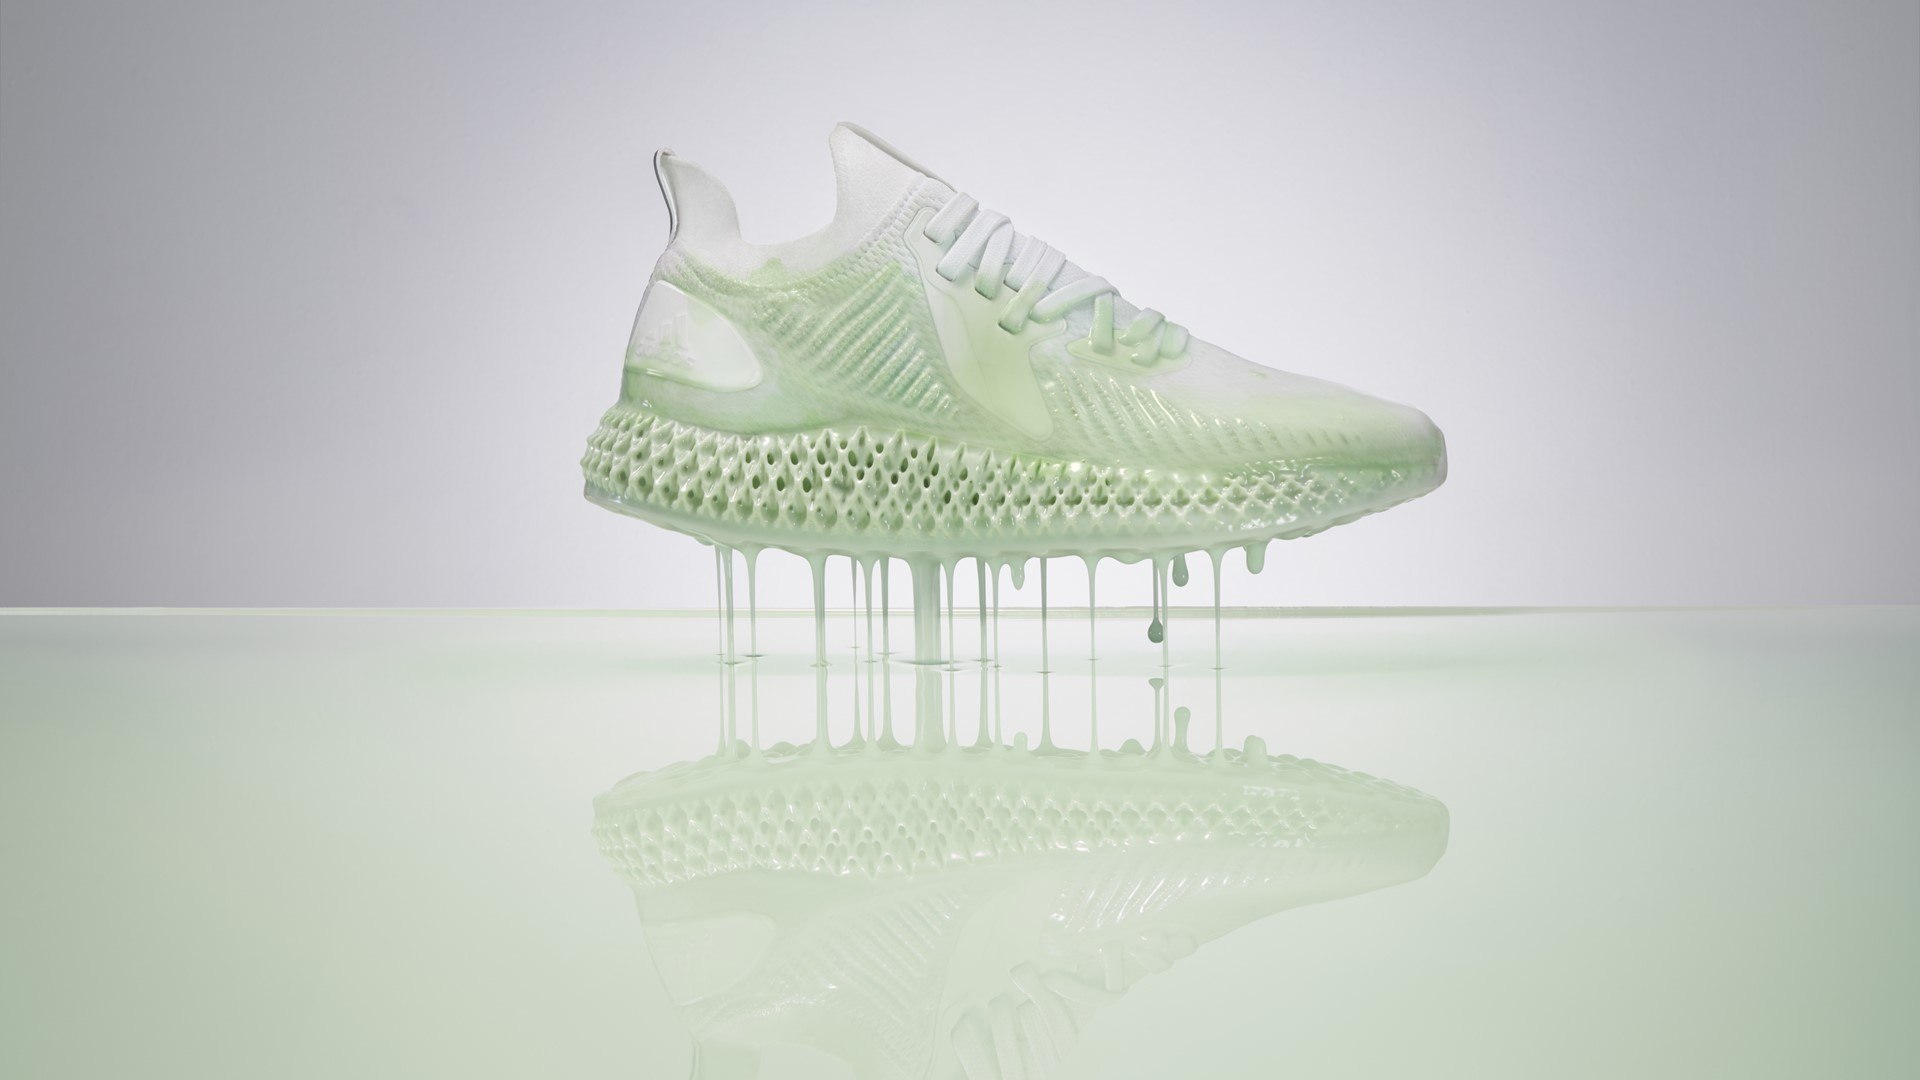 adidas unveils evolved Alphaedge 4D, featuring triple white ...